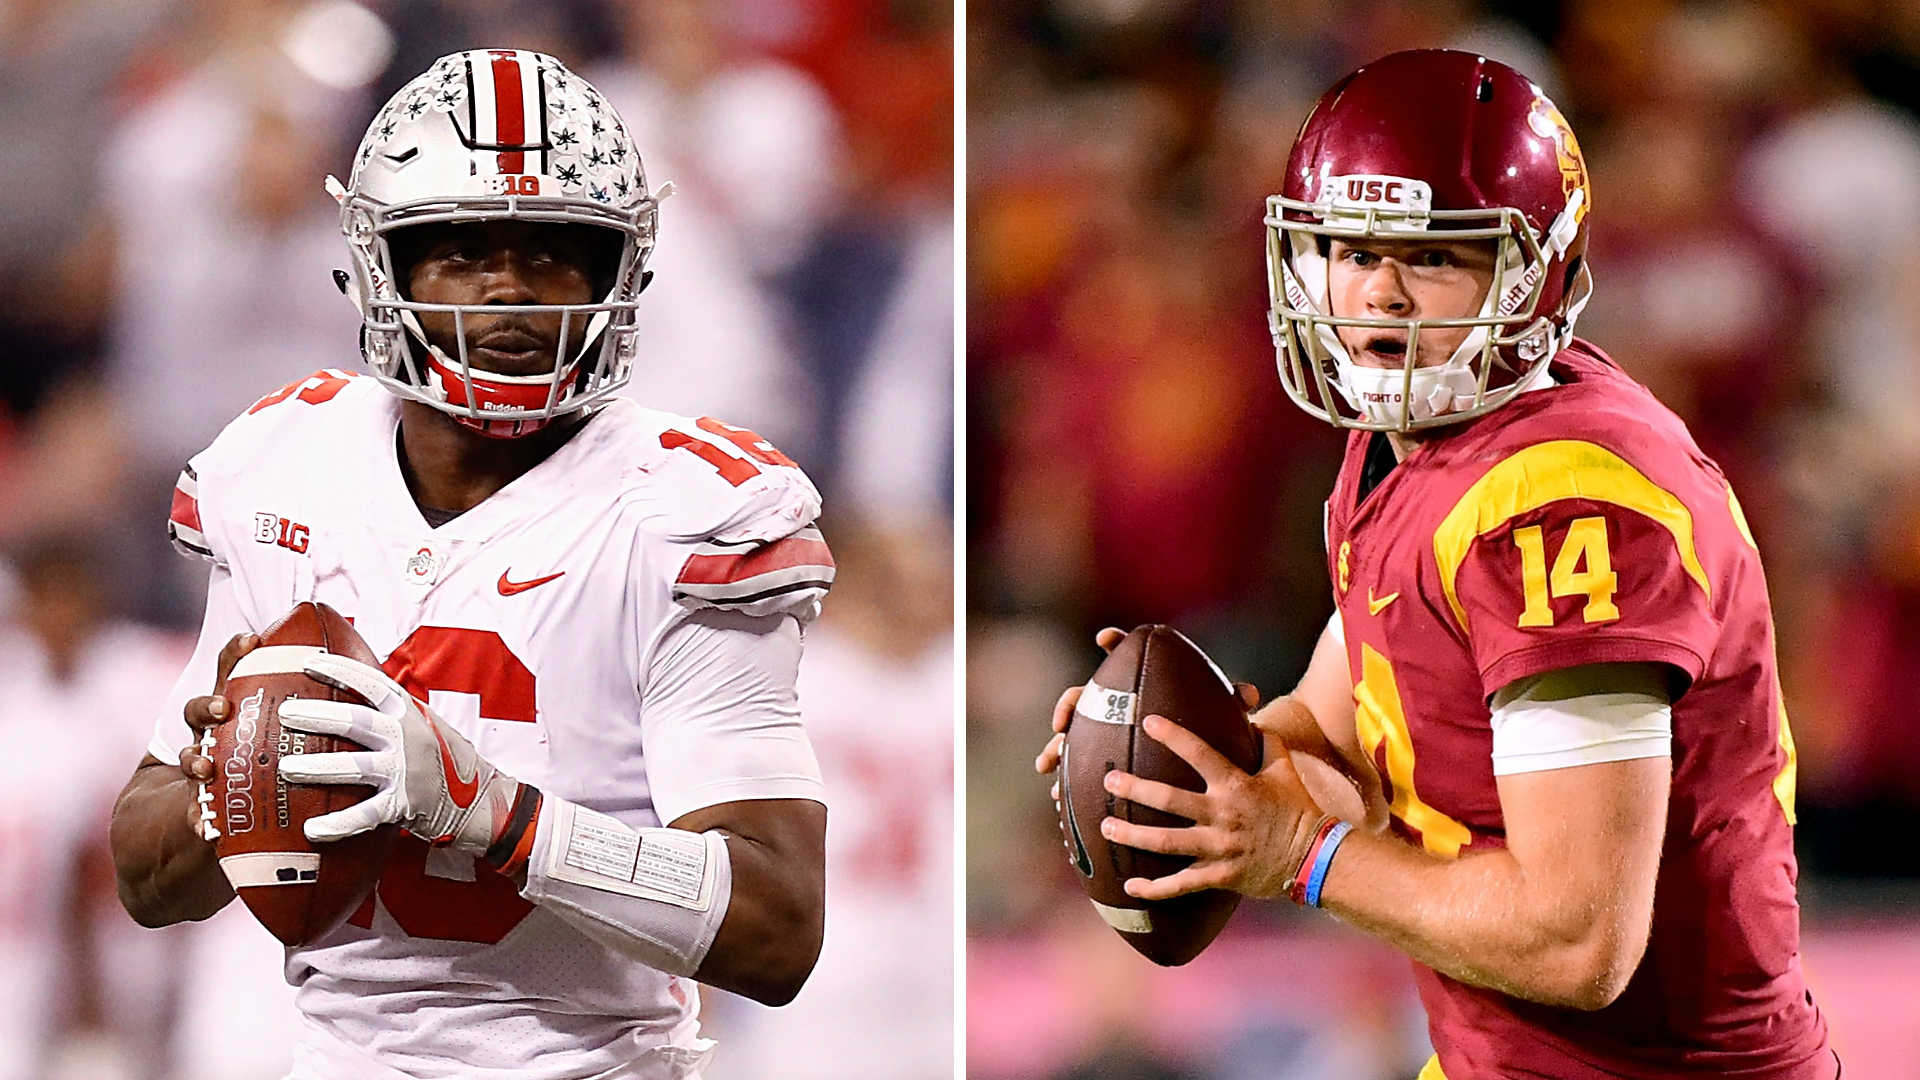 USC Football rises into Top 10 in final College Football Playoff rankings